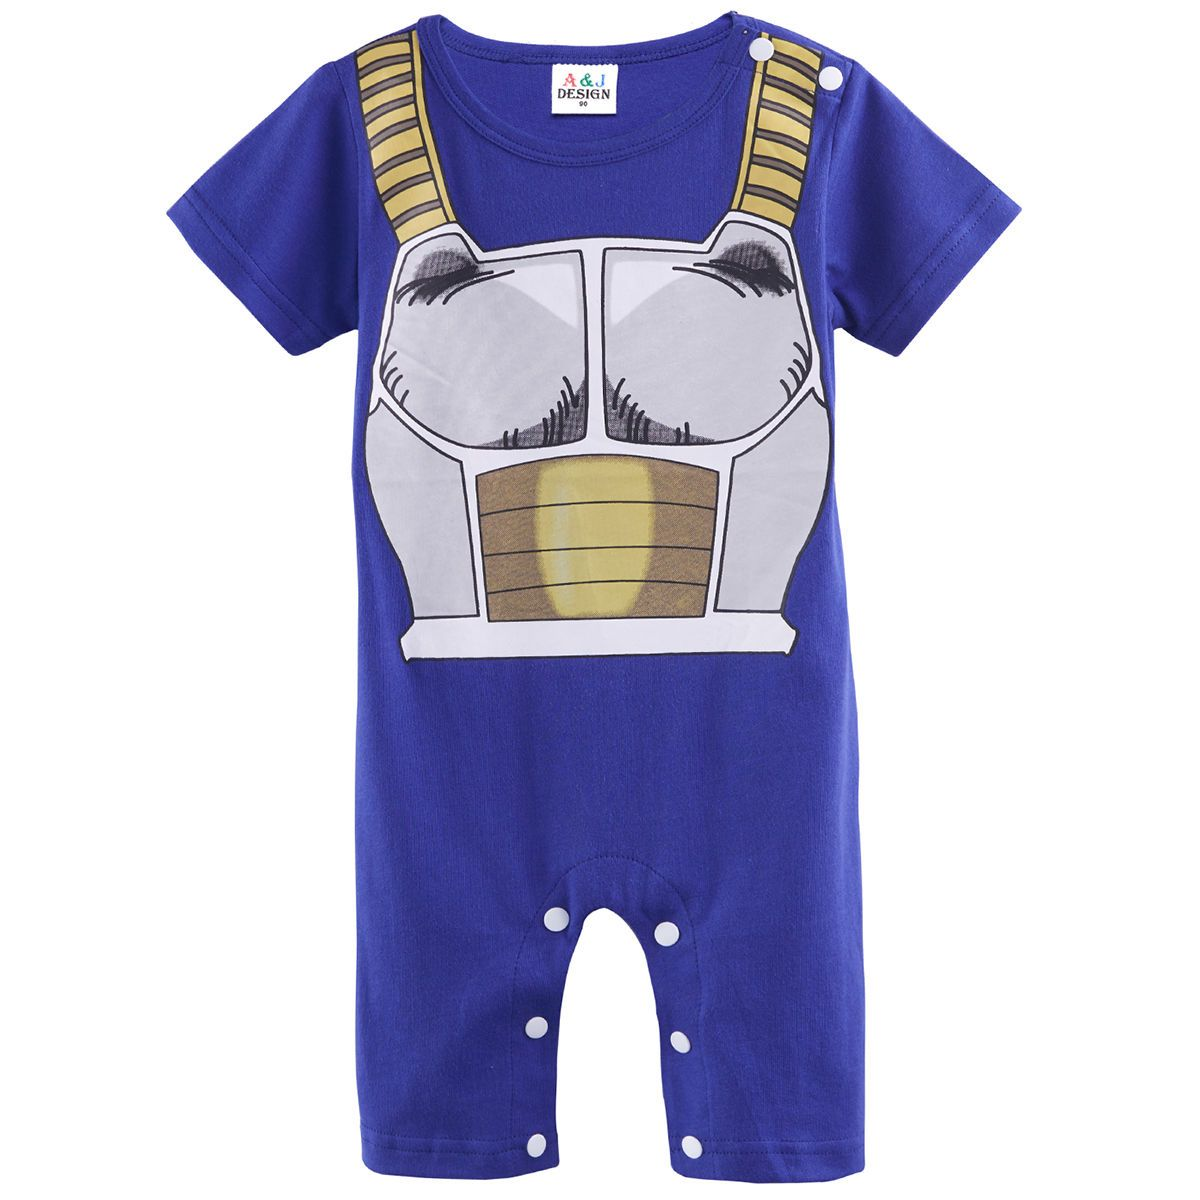 c7b528cad Baby Boys Dragon Ball Z Vegeta Costume Party Romper Onesie Infant Babygrow  0-18M in Clothing, Shoes & Accessories, Baby & Toddler Clothing, Boys'  Clothing ...